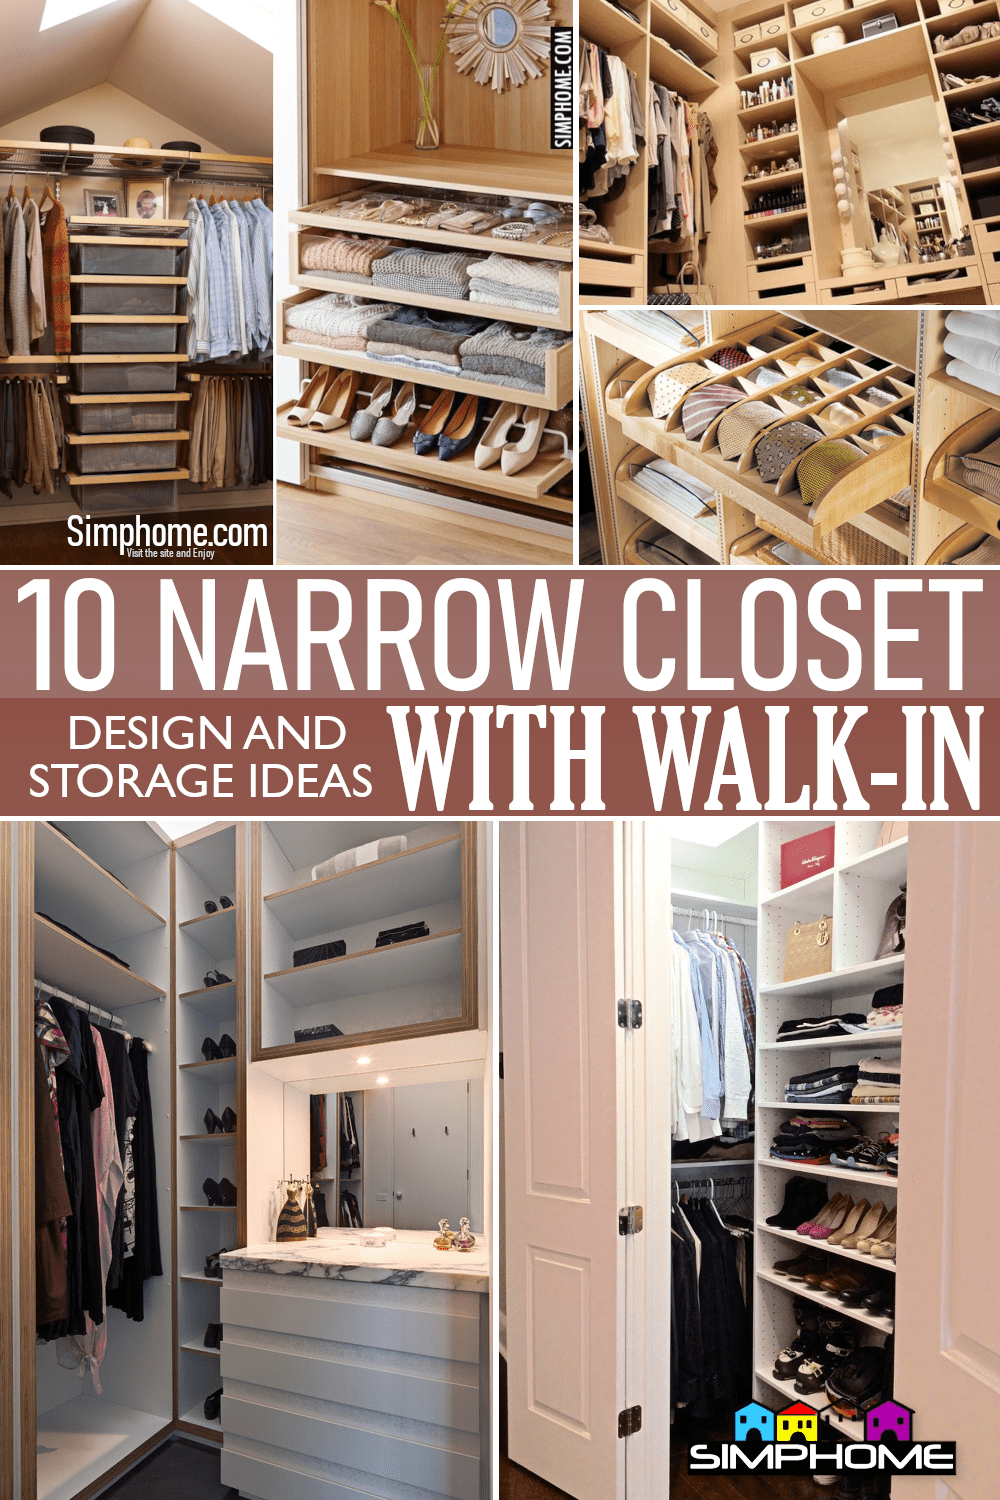 10 Narrow Closet Design and Storage Ideas with Walk in via Simphome.comFeatured